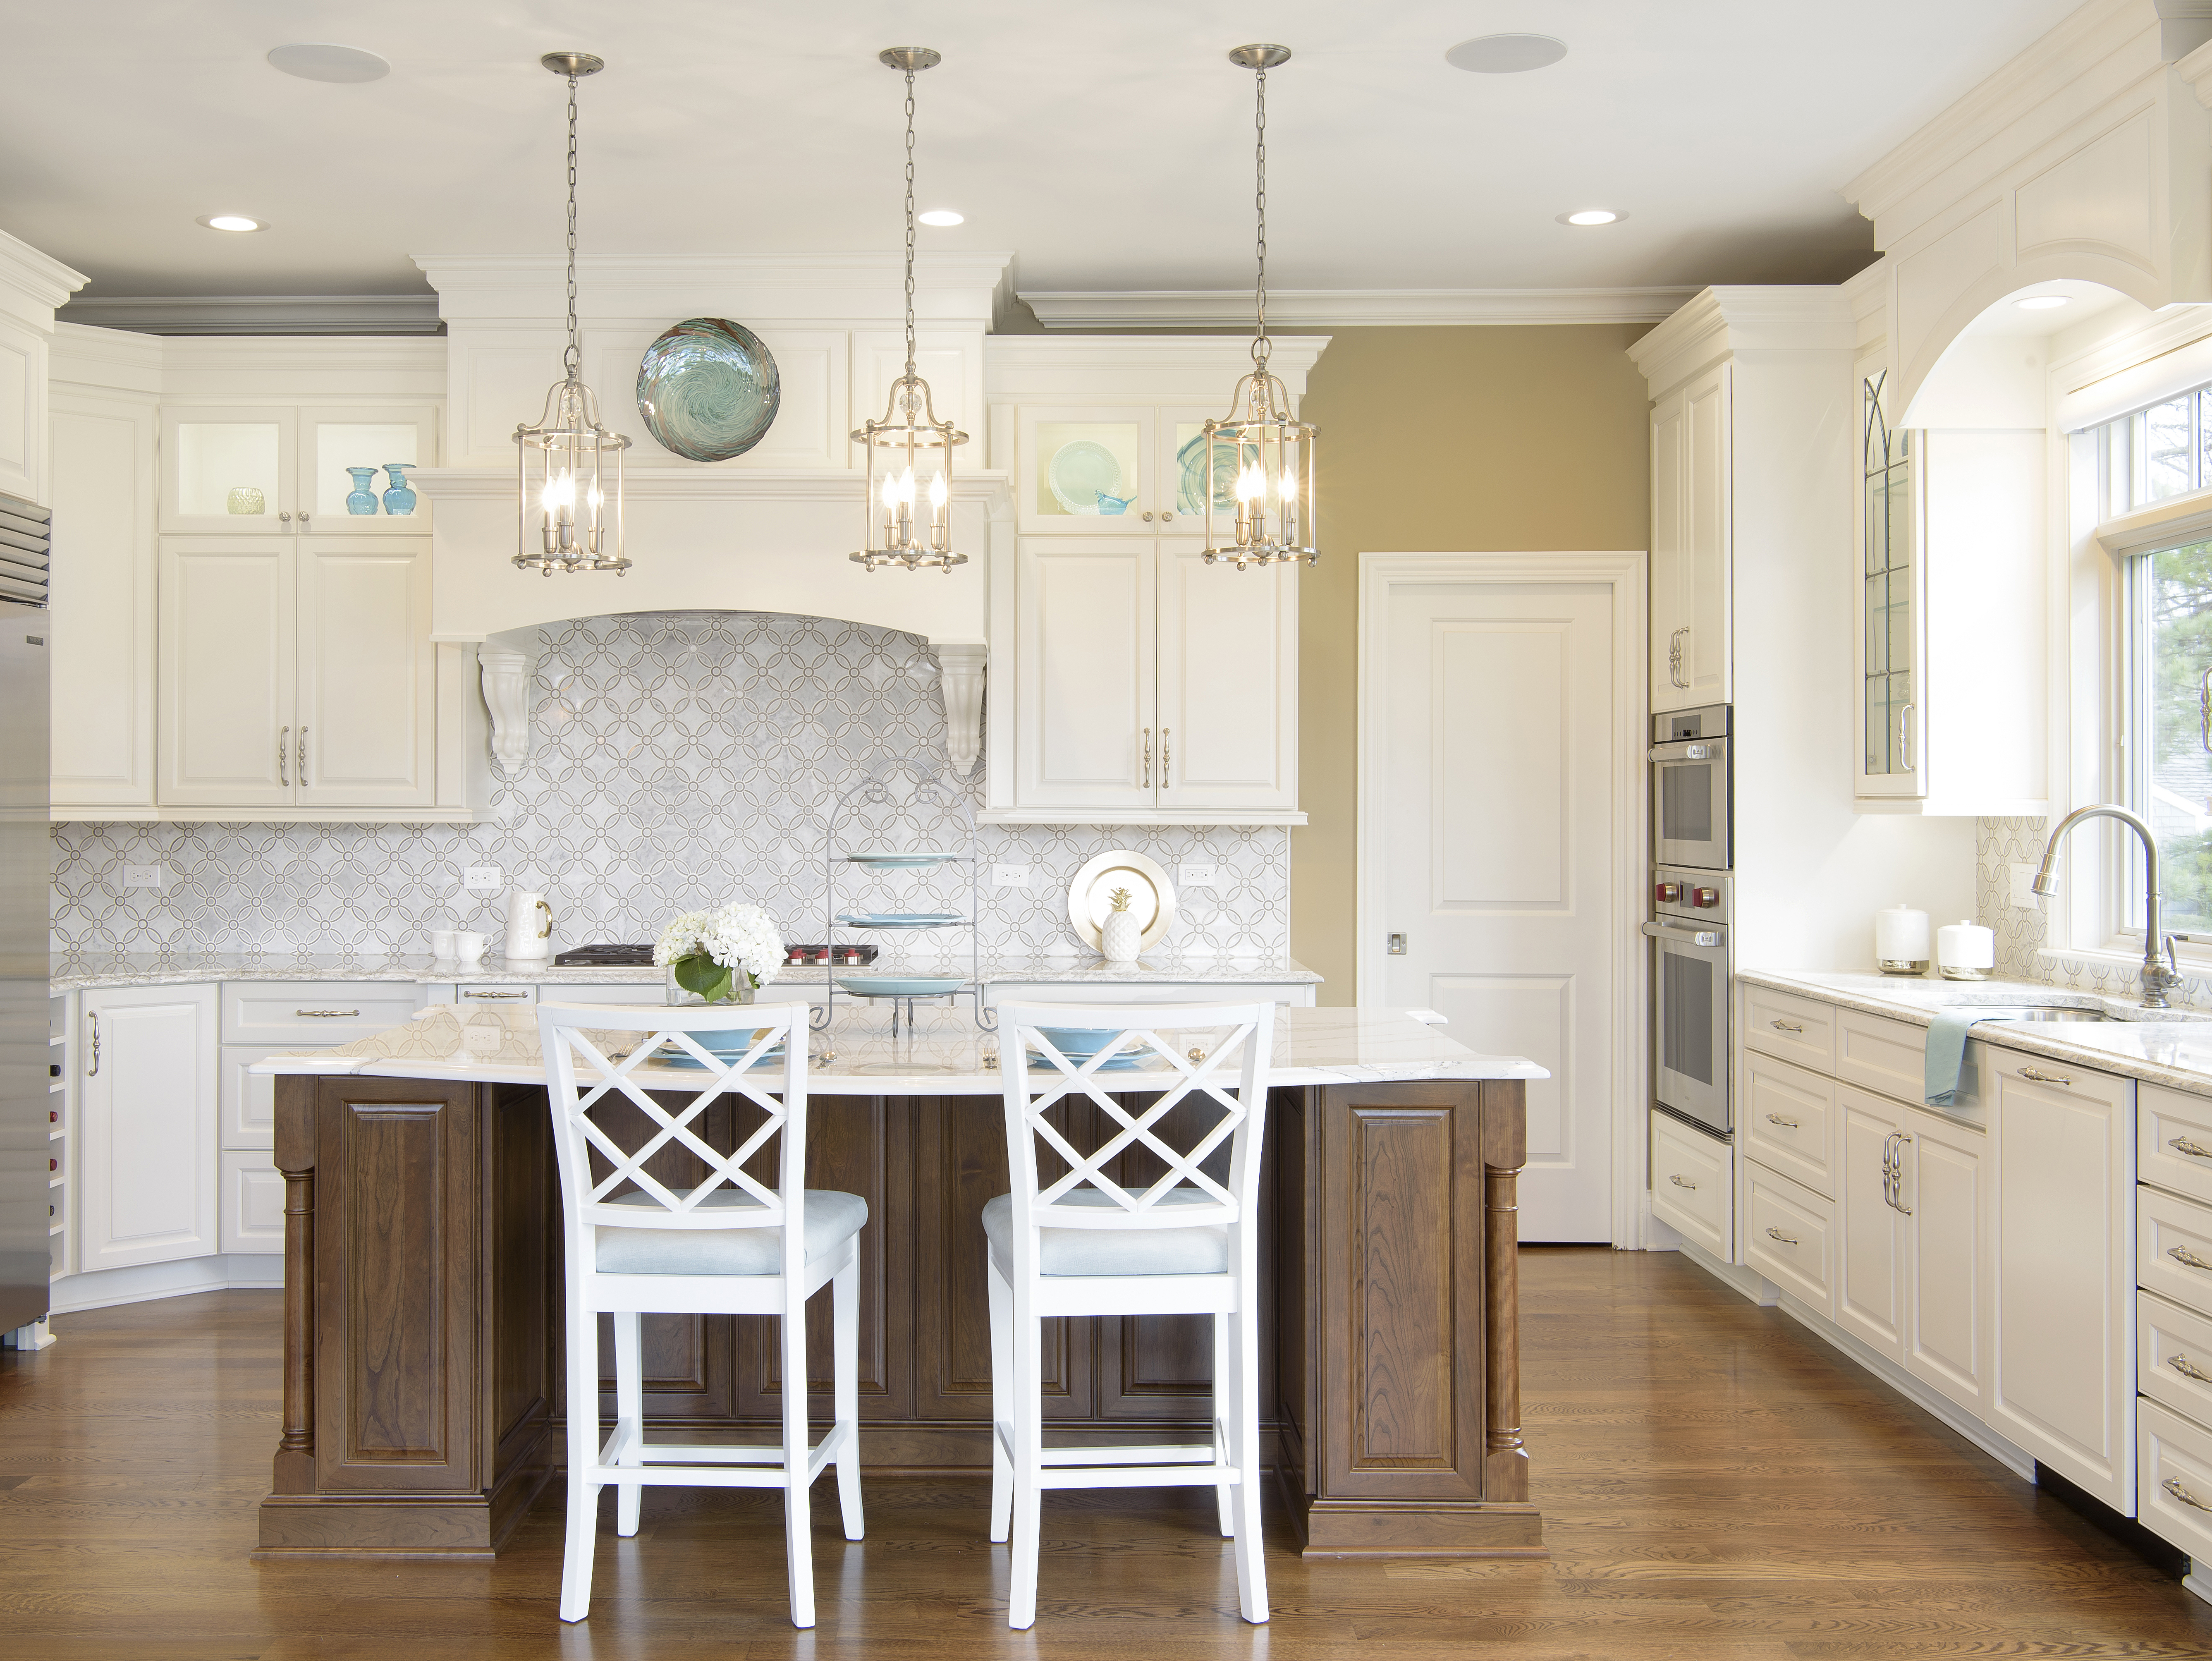 Absolute Perfection - Bradford and Kent Custom Remodeling